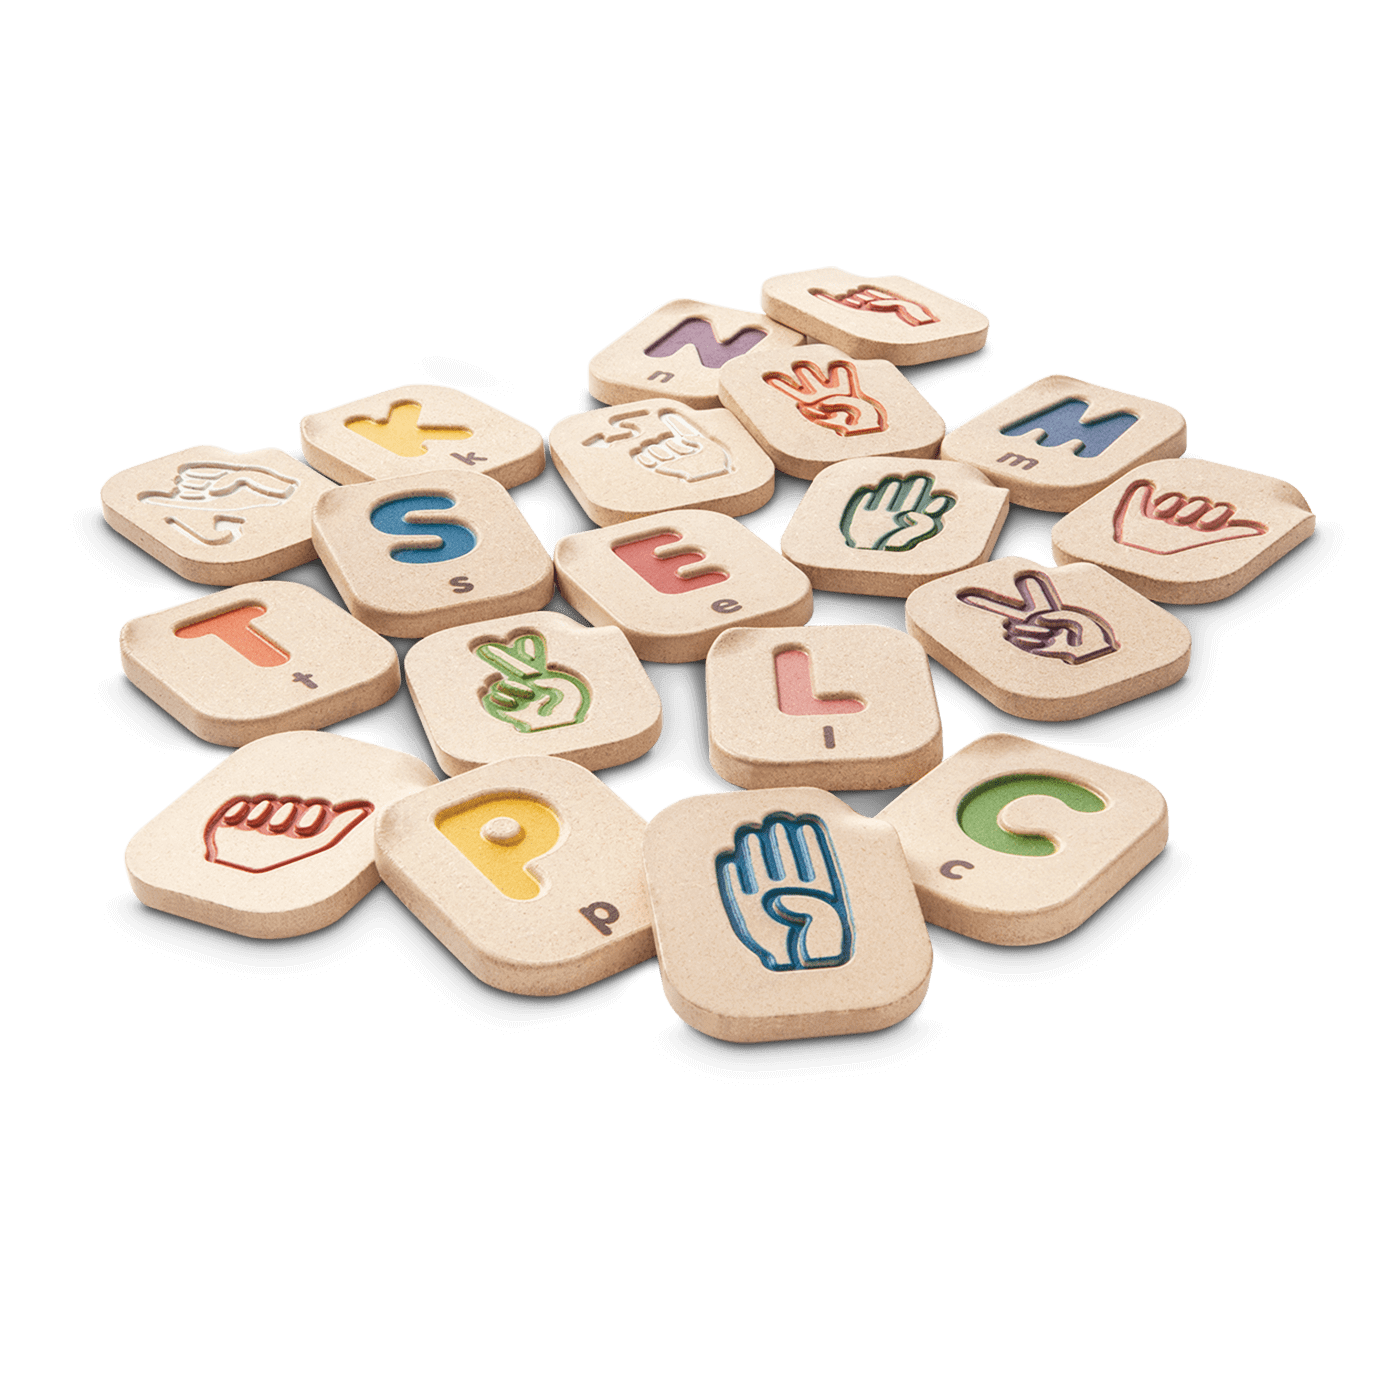 5672-plantoys-hand-sign-alphabet-a-z-learning-and-education-fine-motor-language-and-communications-2yrs-wooden-toys-education-toys-safety-toys-non-toxic-0.png